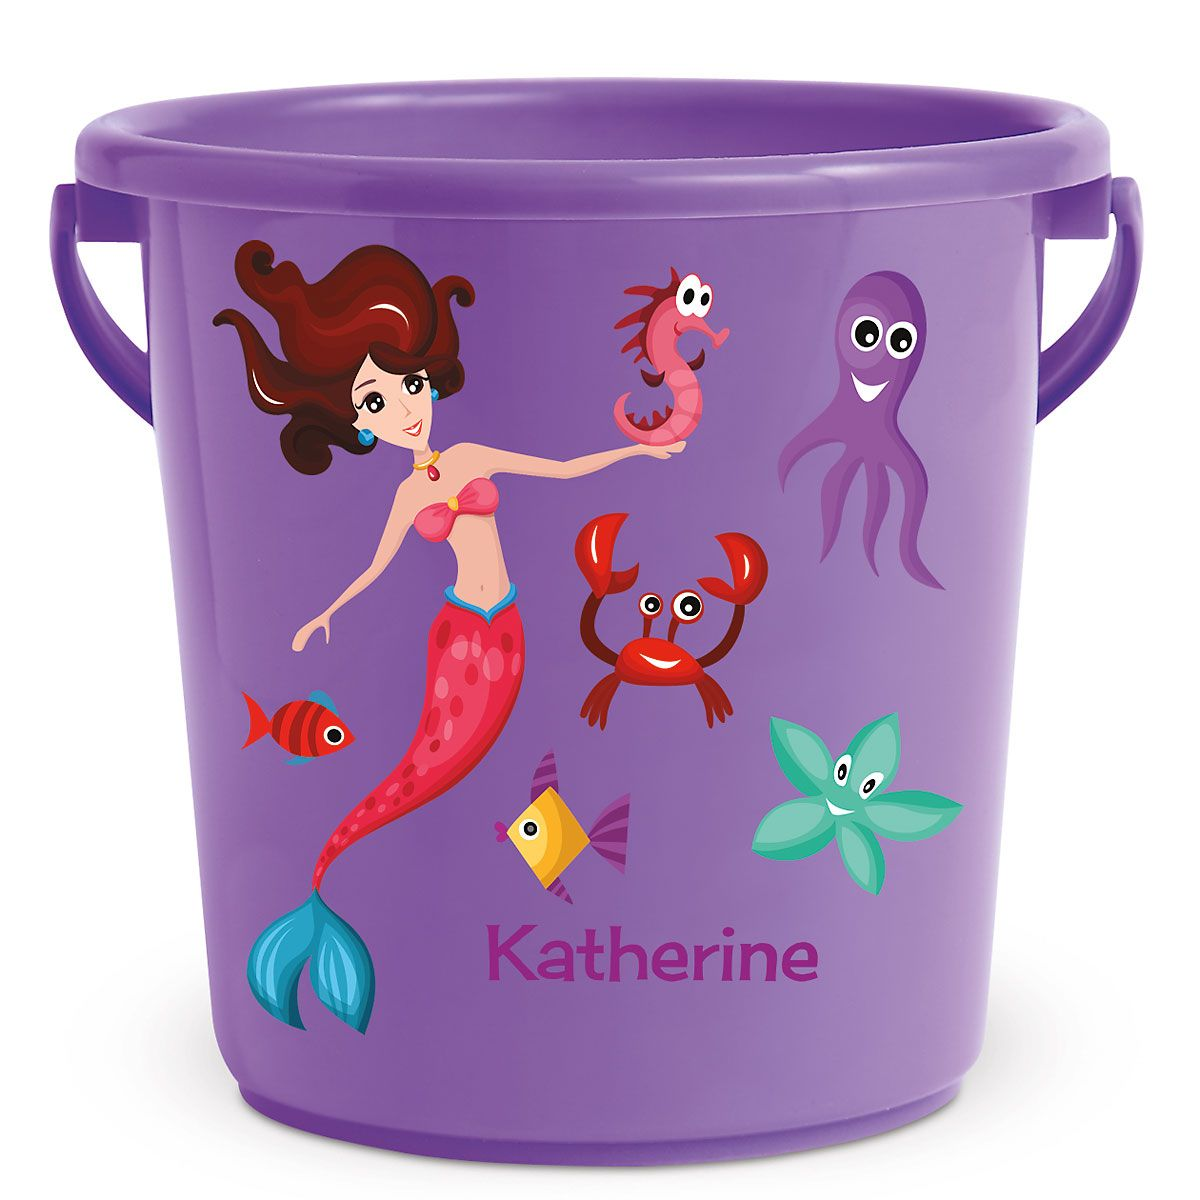 Personalized Kids Beach Bucket - Mermaid